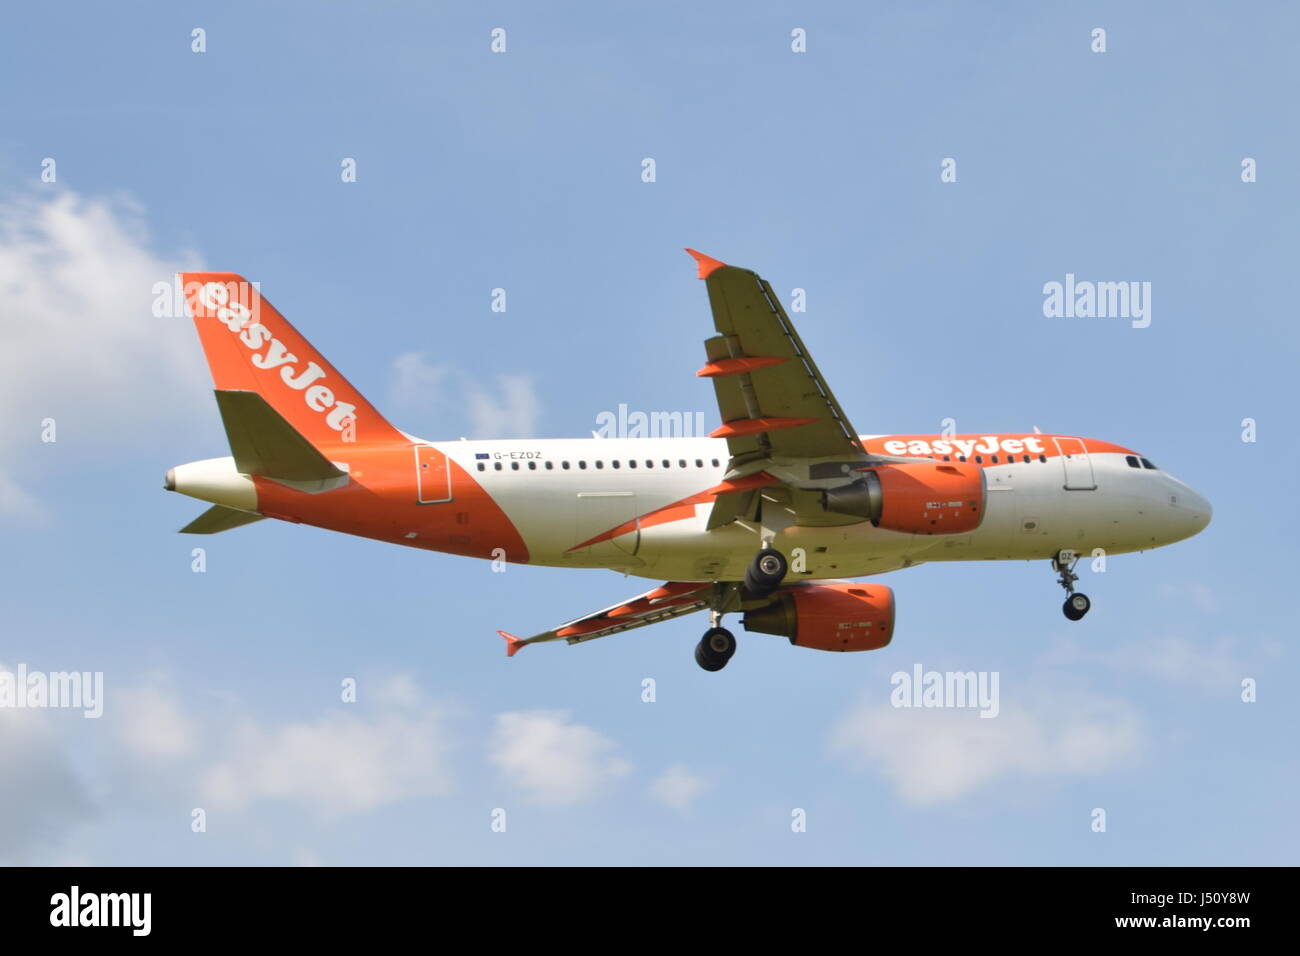 G-EZDZ easyJet Airbus A319-100 - cn 3774 on final approach to London Gatwick airport LGW - Stock Image